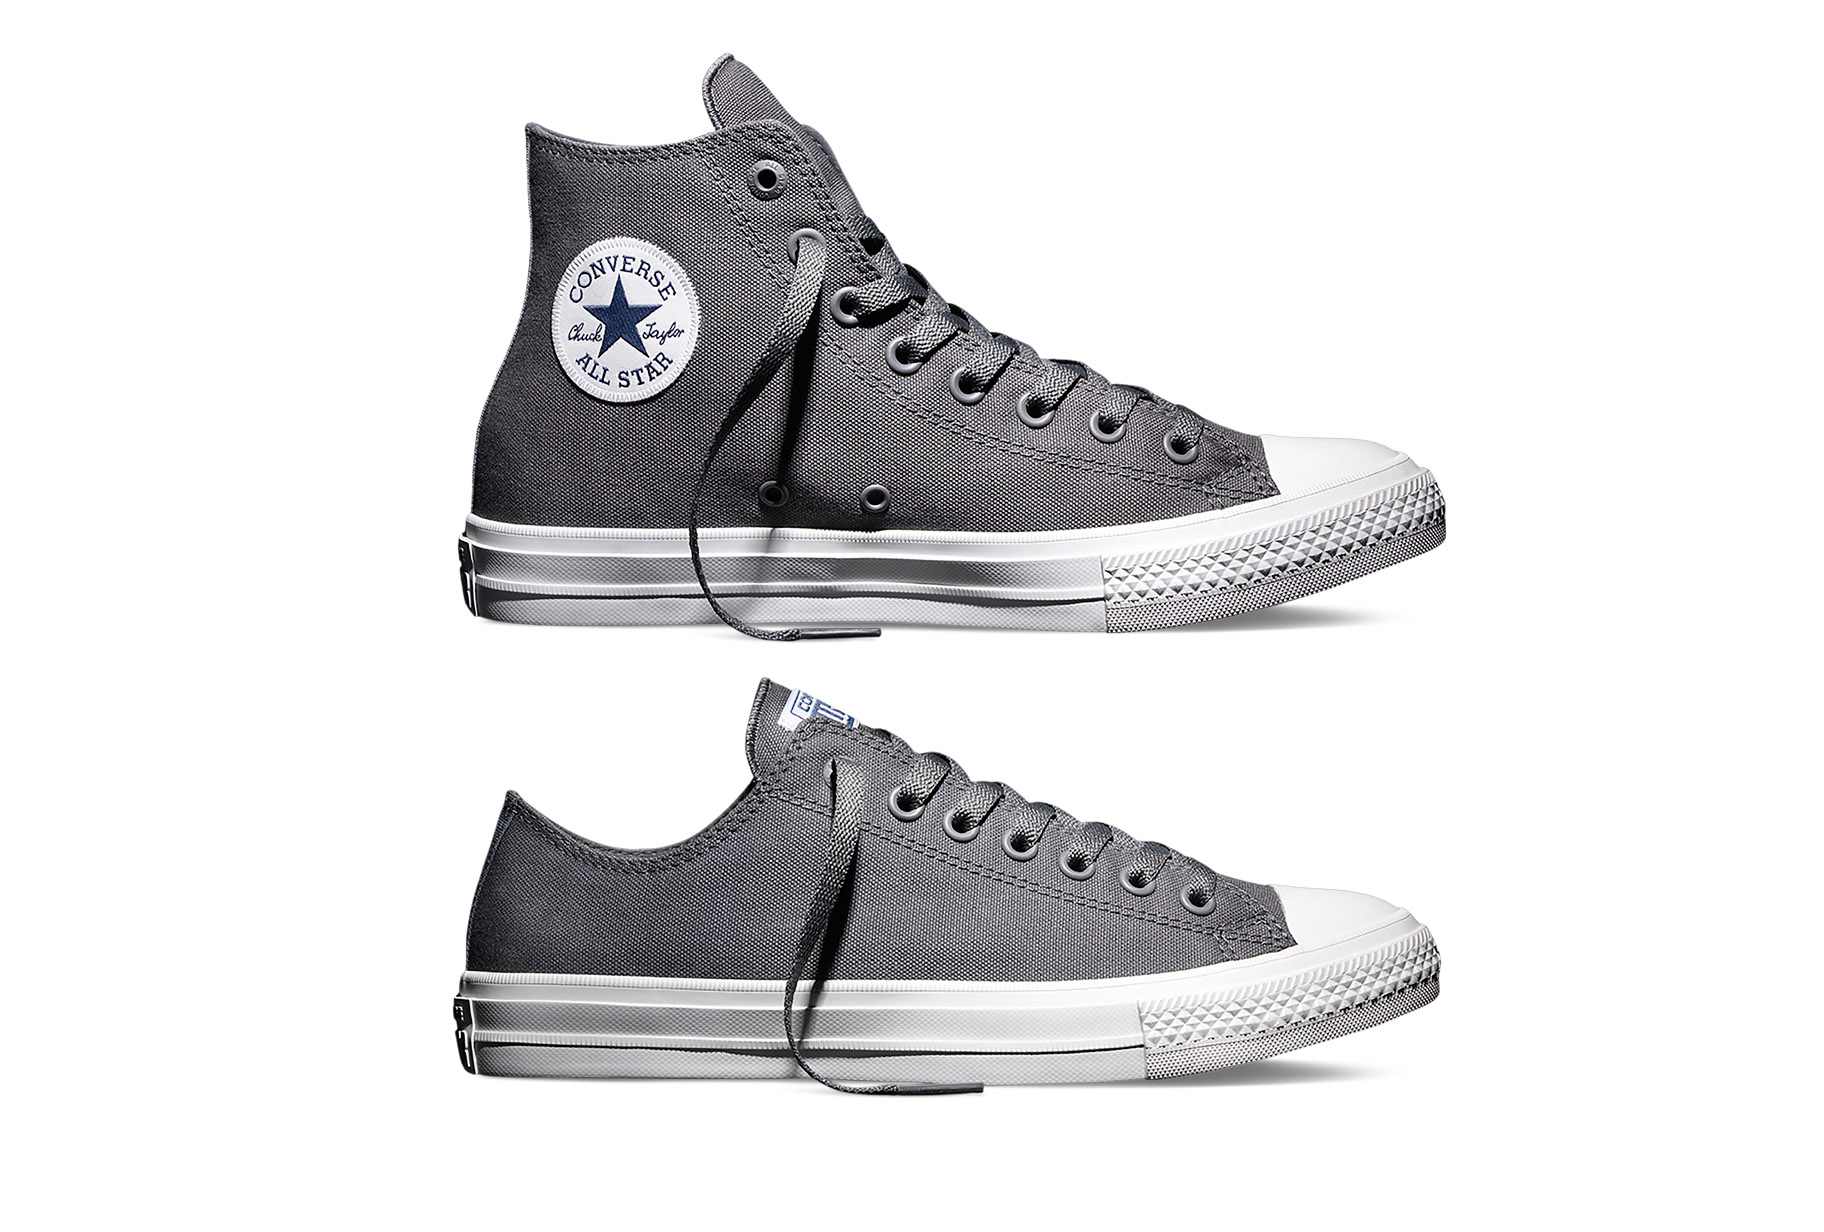 Converse Chuck Taylor All Star II high low 'Charcoal' lateral